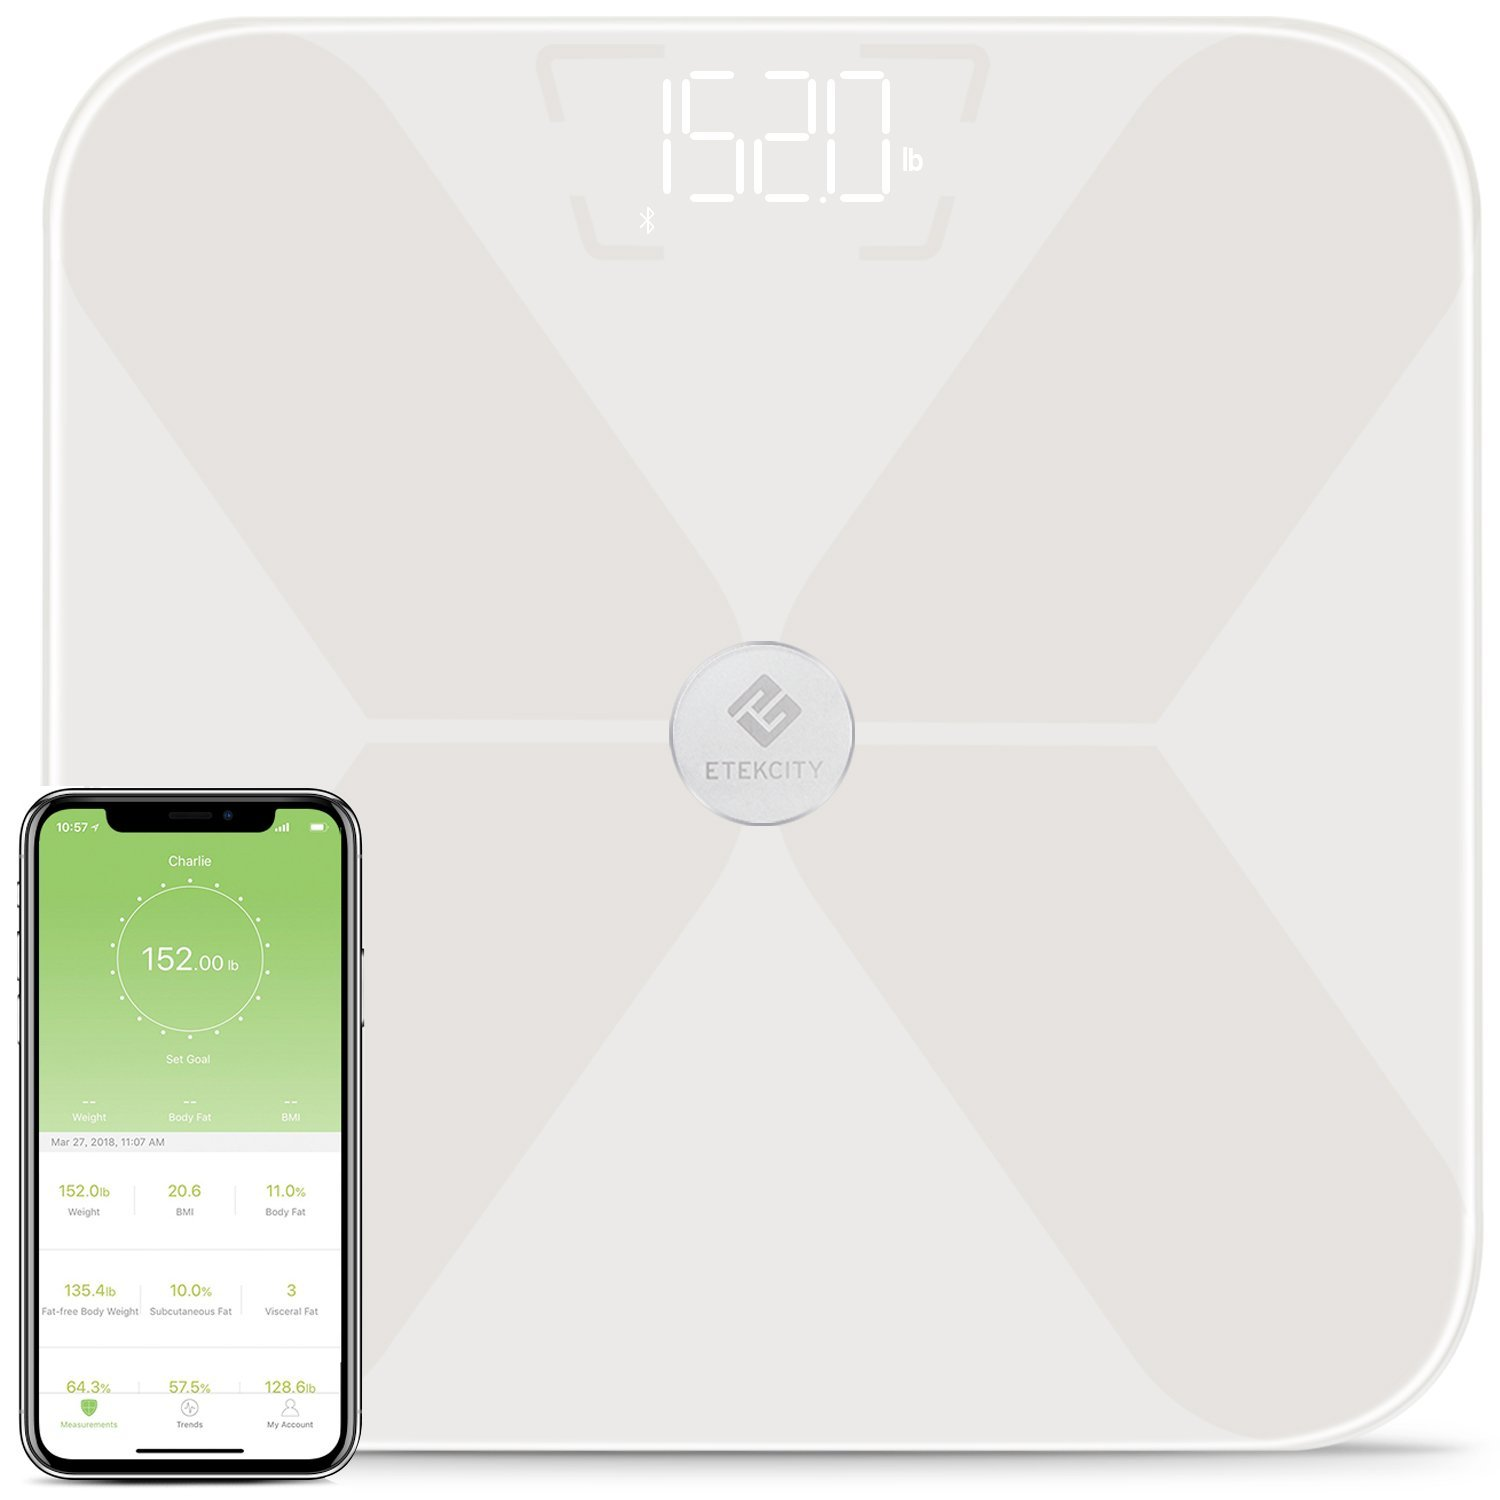 Etekcity Smart Bluetooth Body Fat Scale, Digital Wireless BMI Weight Bathroom Scale with 13 Essential Measurements and ITO Conductive Glass,FDA Approved Body Composition Analyzer with App, White